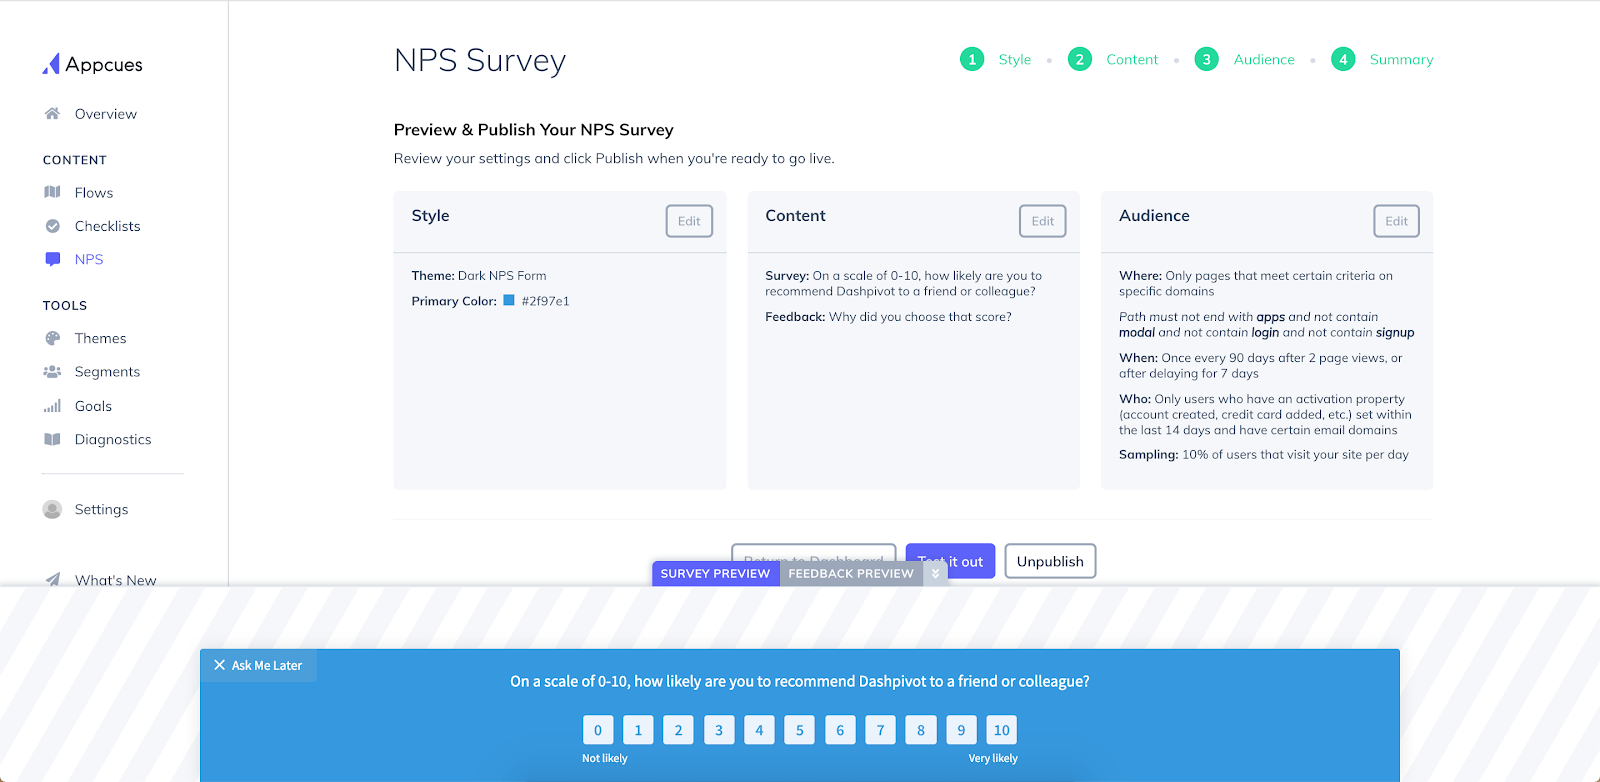 this is a screenshot of sitemate's dashpivot nps survey setup made using appcues. this shows appcues' dashboard with available tools including nps surveys. users can create nps survey on this page.